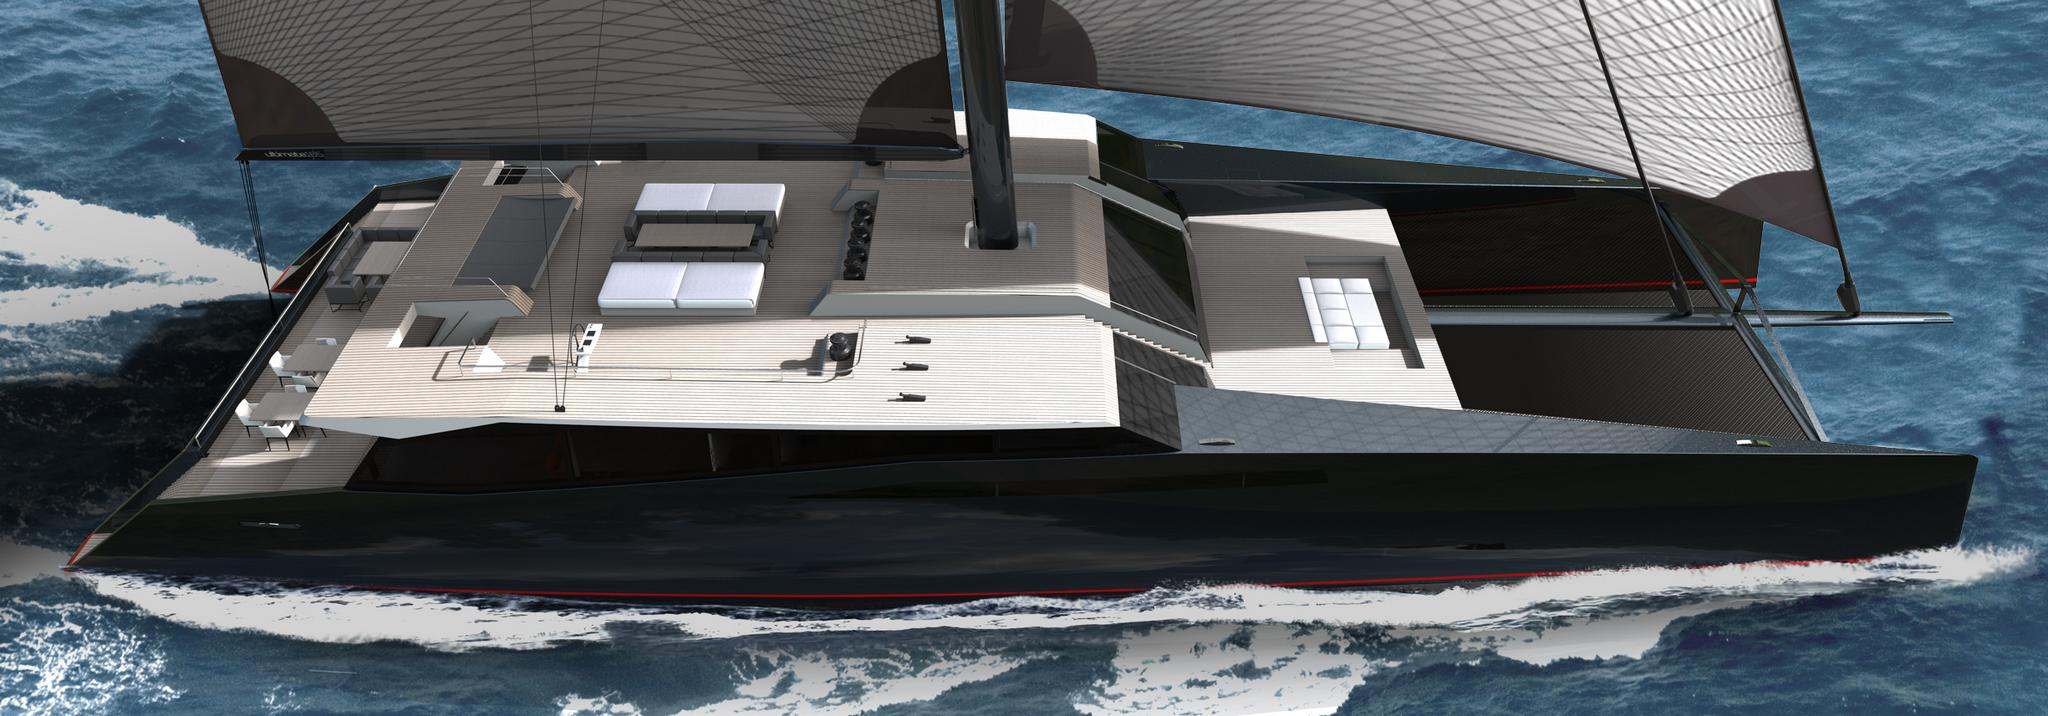 Catamarans SUNREEF 165 ULTIMATE NEW BUILD, Manufacturer: SUNREEF YACHTS, Model Year: , Length: 165ft, Model: Sunreef 165 Ultimate, Condition: New, Listing Status: Coming Soon, Price: USD